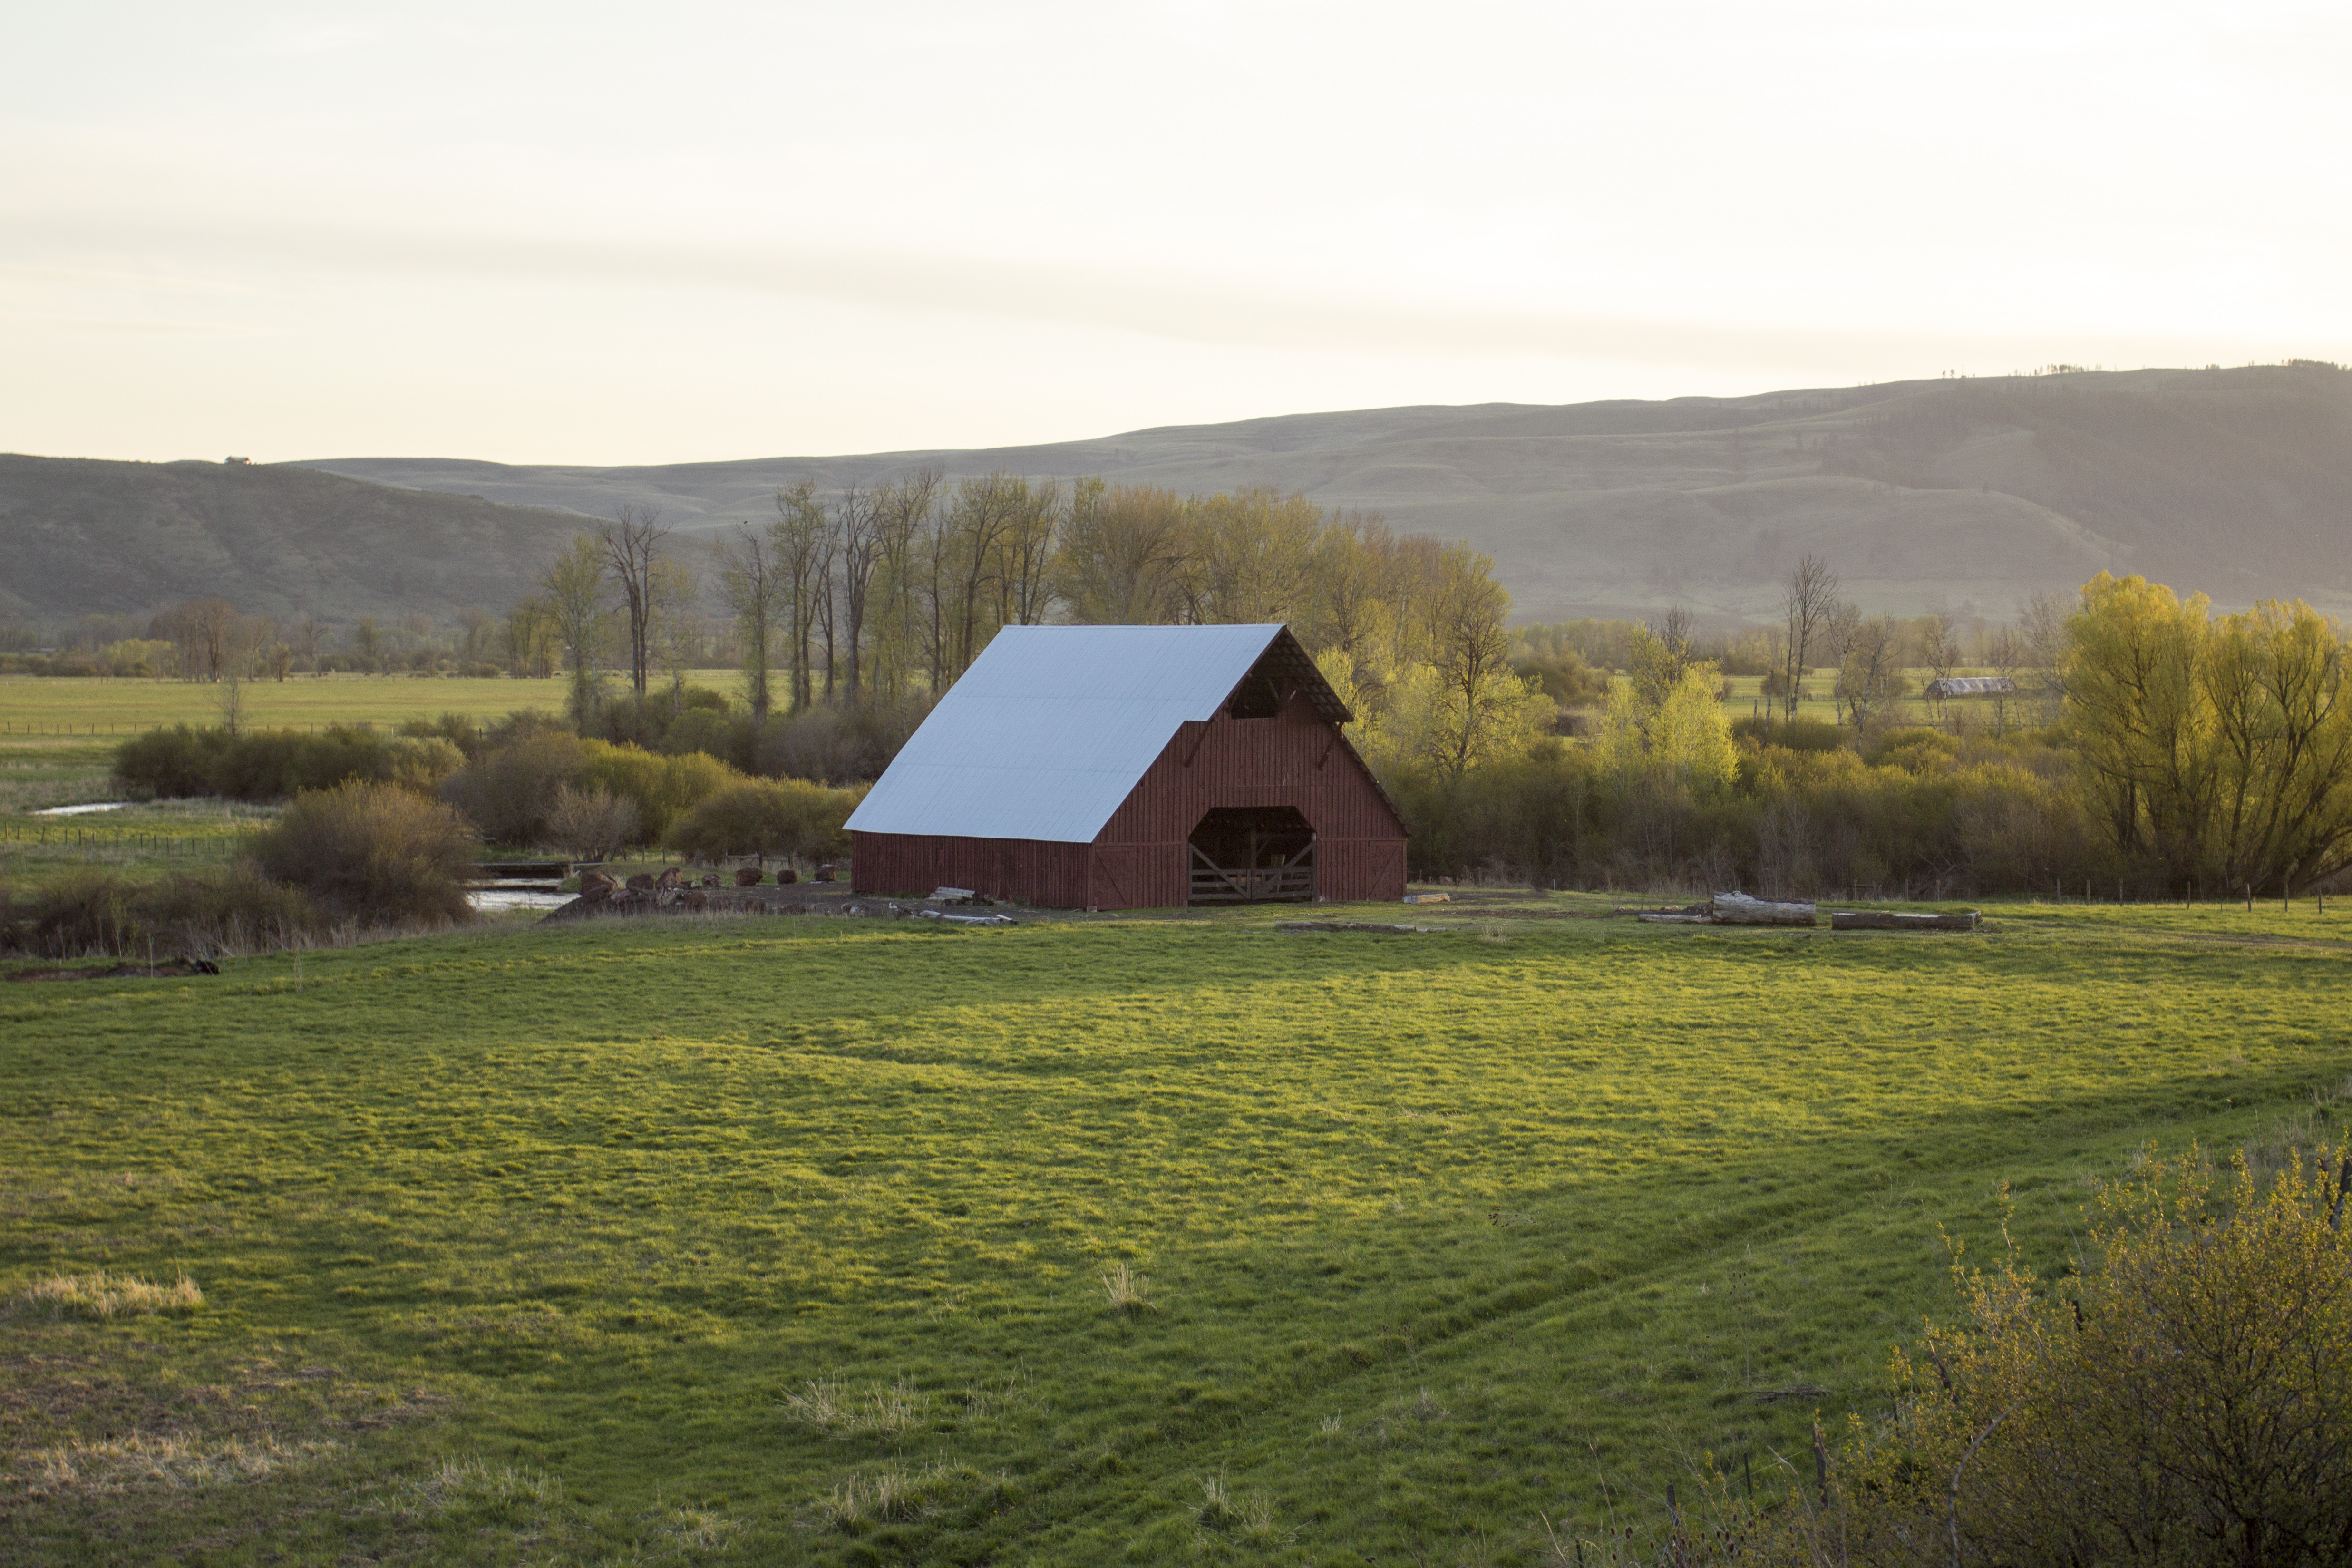 Barn outside of Richland, OR, Barn, Building, Field, Grass, HQ Photo